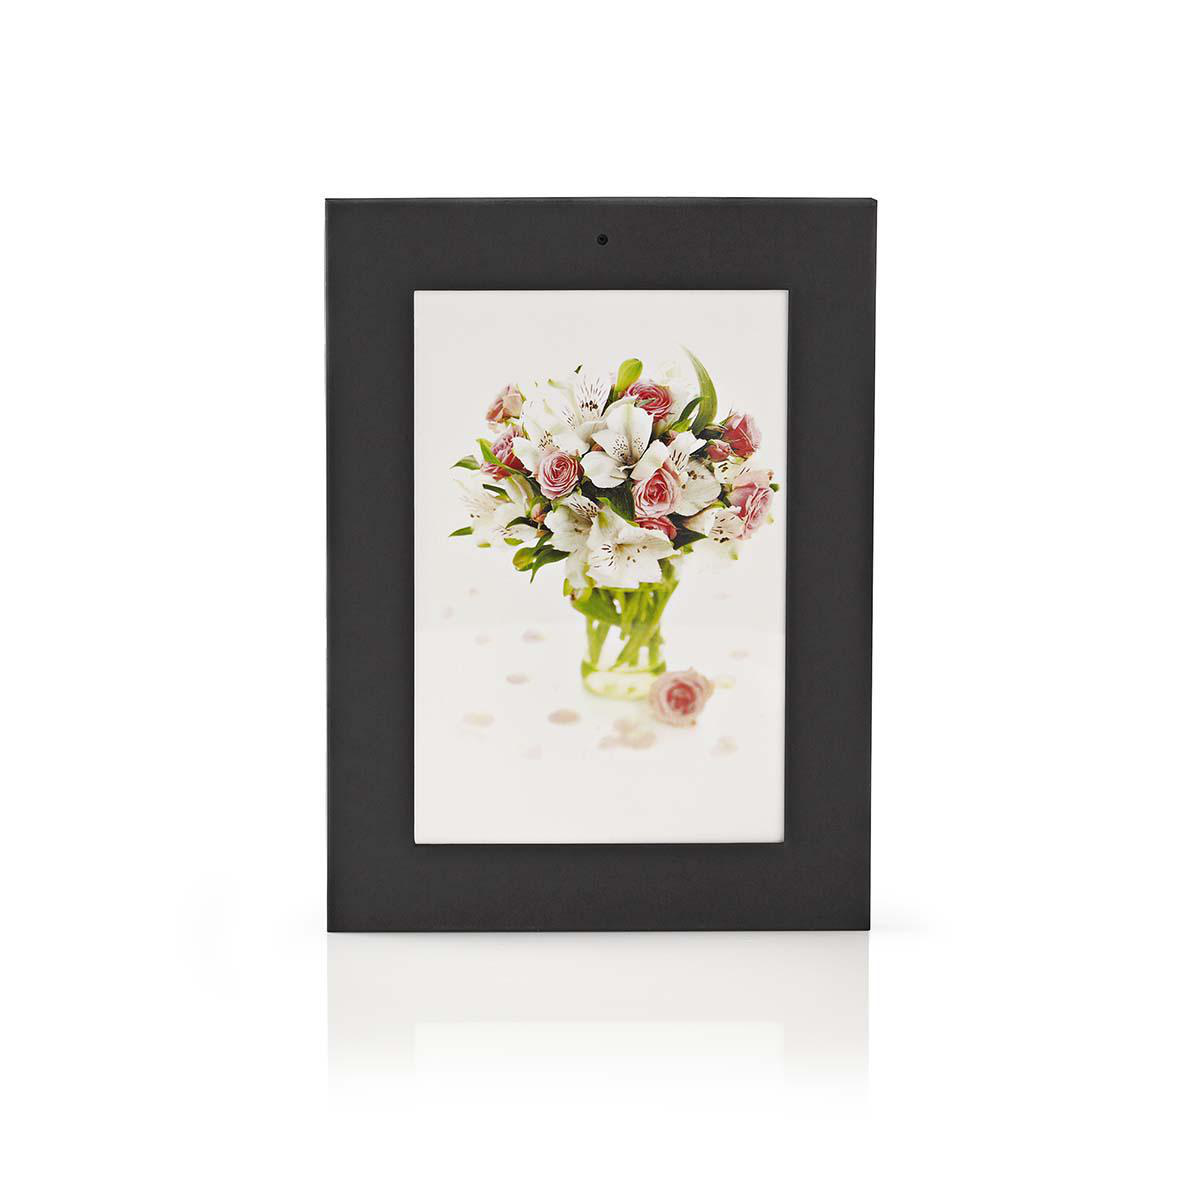 Photo frame with integrated camera | 1280x960 video | 3840x2880 photo | Rechargeable